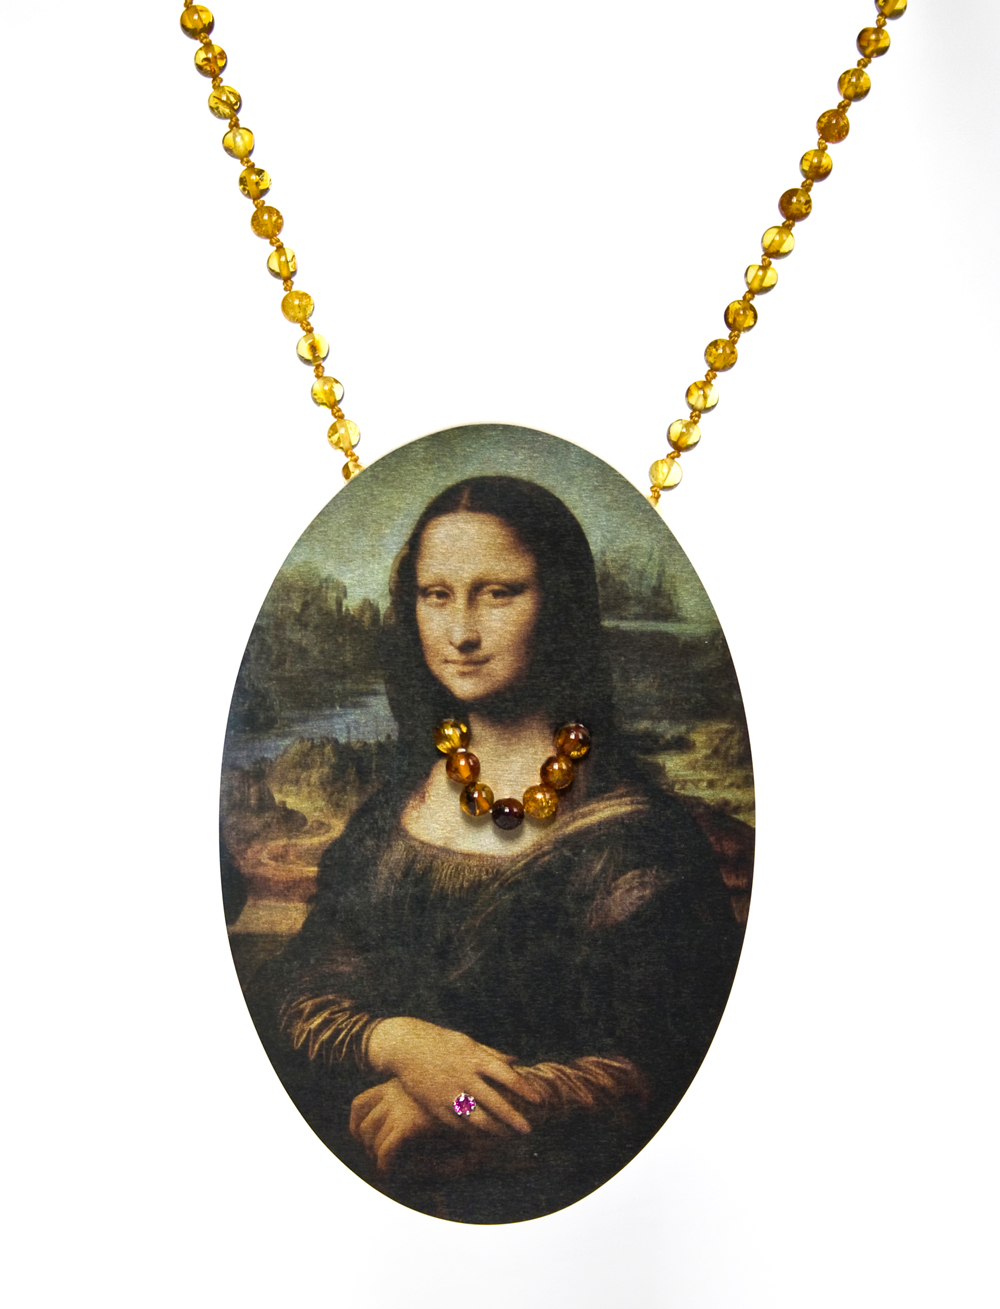 Herman Hermsen, Mona, 2015 (pendant/necklace), 2015, Amber, wood, photoprint on aluminum, 12 X 7 cm